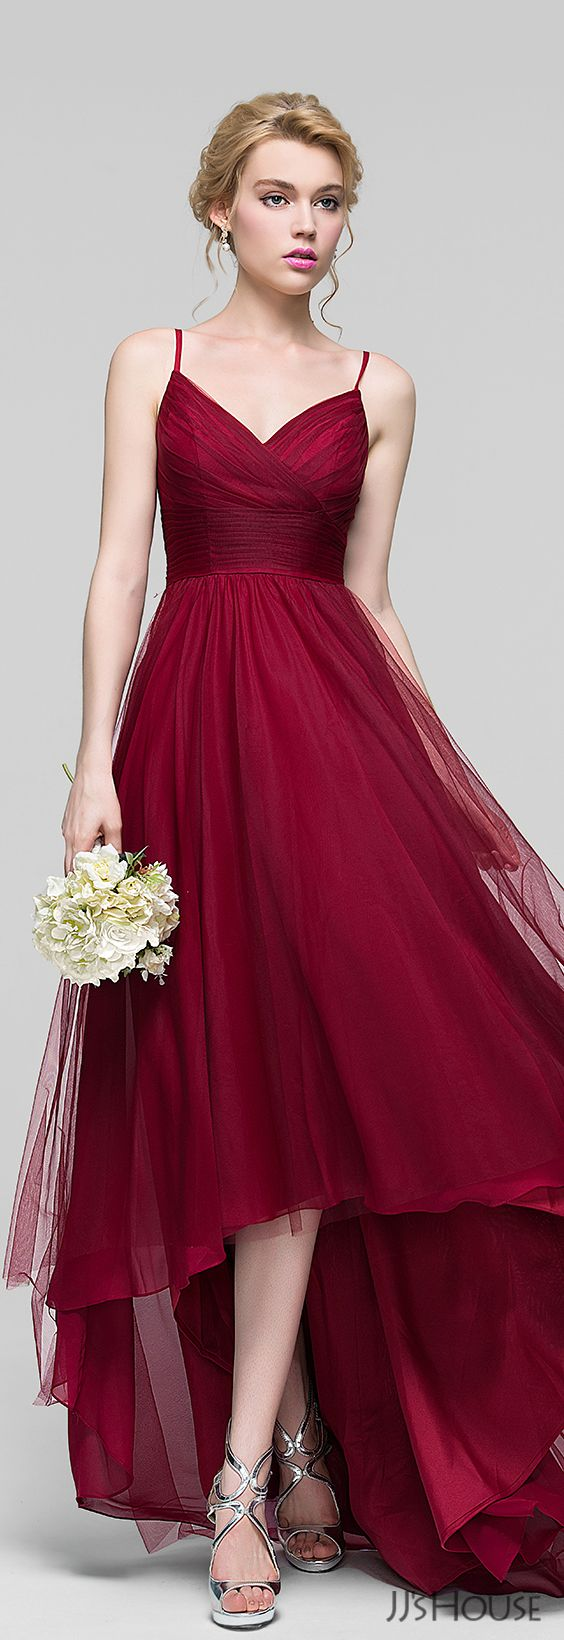 Best 25 asymmetrical bridesmaid dress ideas on pinterest alta costura vermelho red dress formatura casamento lux glamour fashion fashionista 2017 summer vero luxo fest ombrellifo Image collections